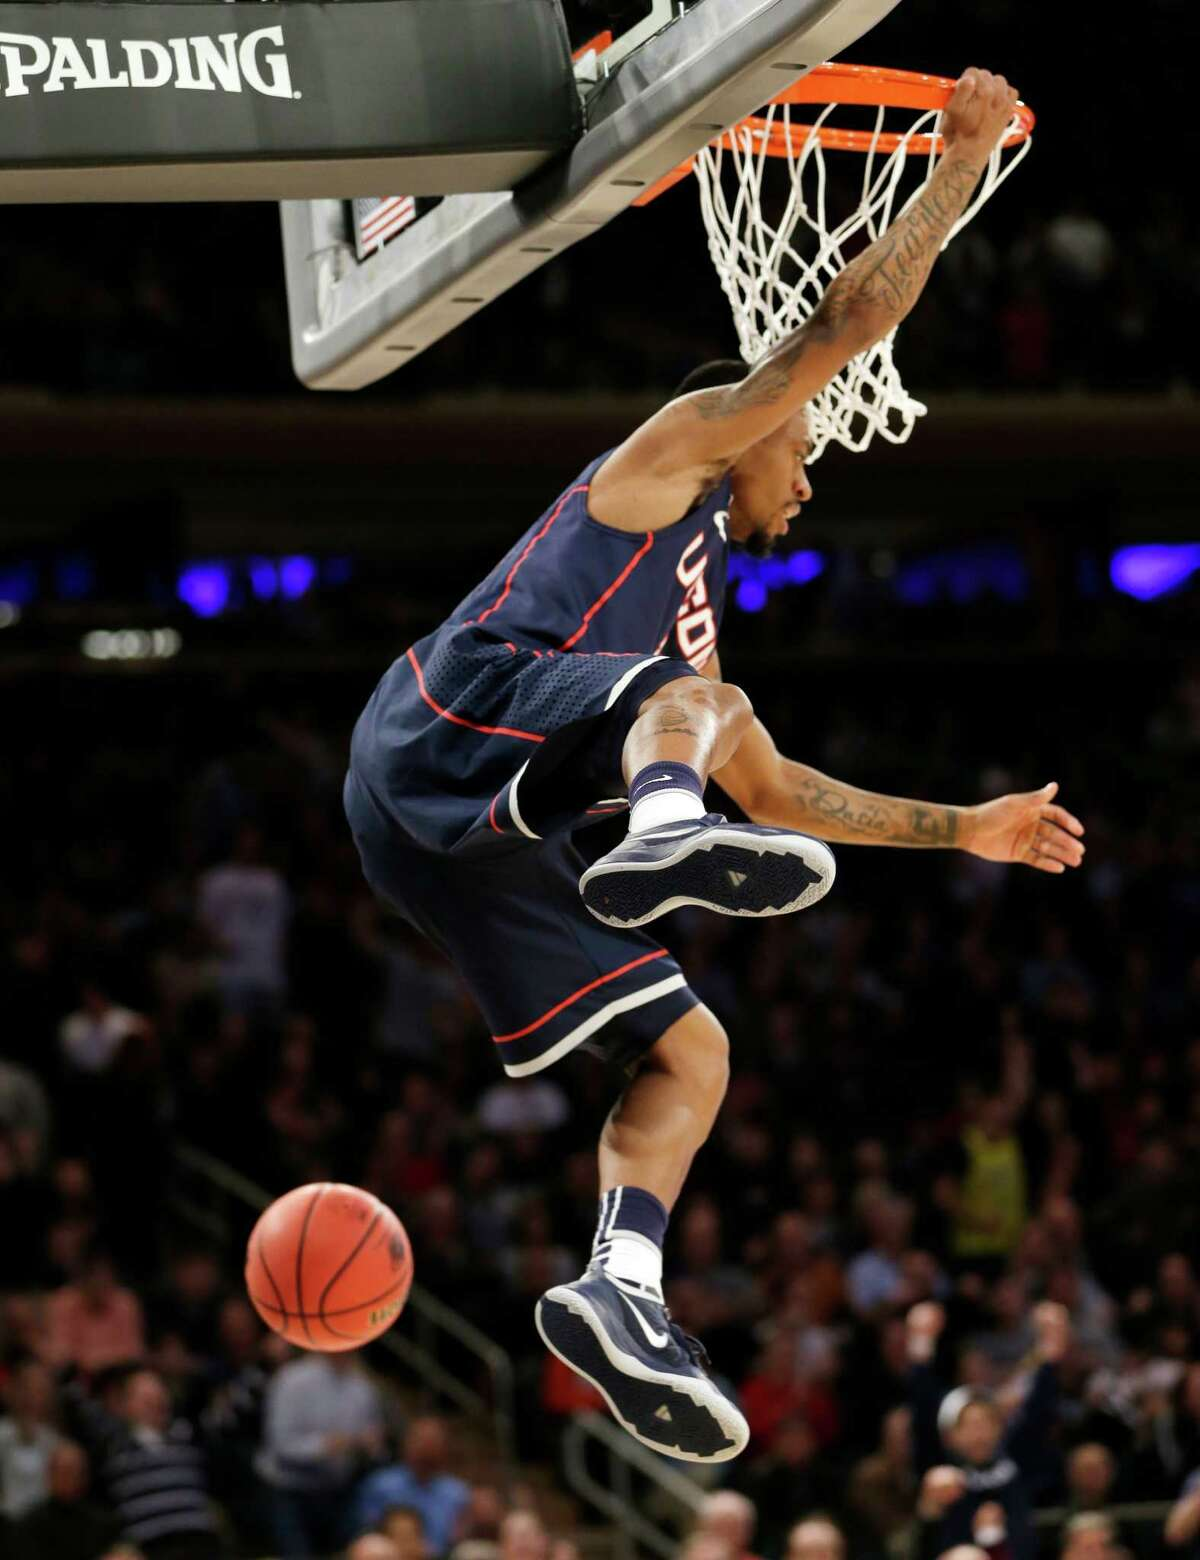 Connecticut's Ryan Boatright dunks the ball in the first half of a regional final against Michigan State at the NCAA college basketball tournament on Sunday, March 30, 2014, in New York. (AP Photo/Seth Wenig) ORG XMIT: MSG101